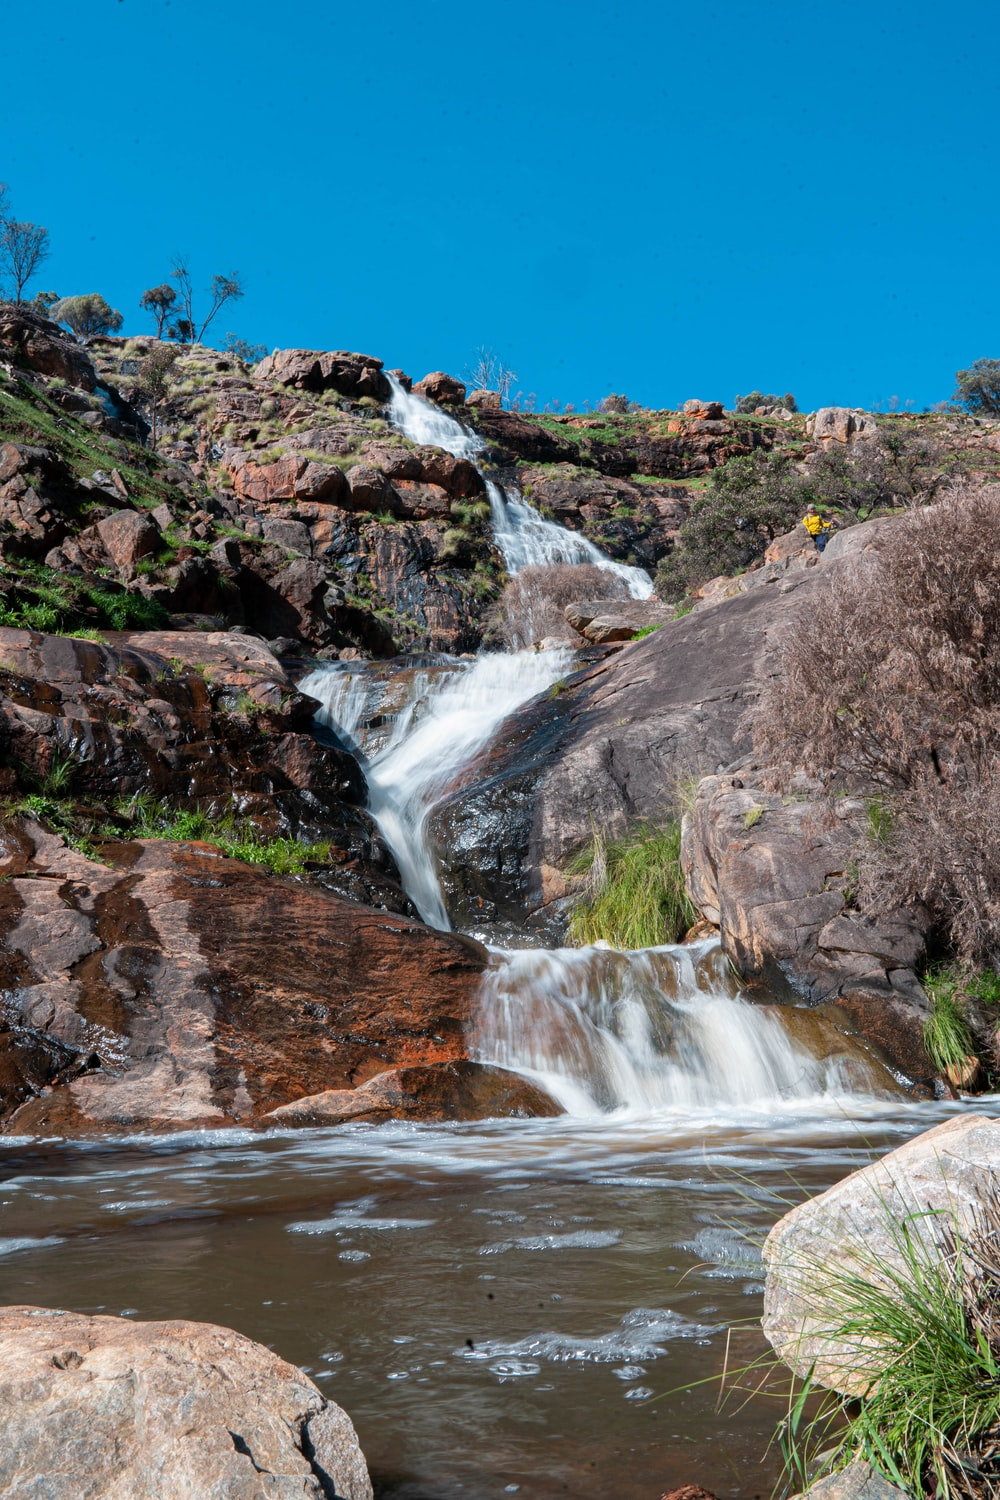 water falls on brown rocky mountain under blue sky during daytime